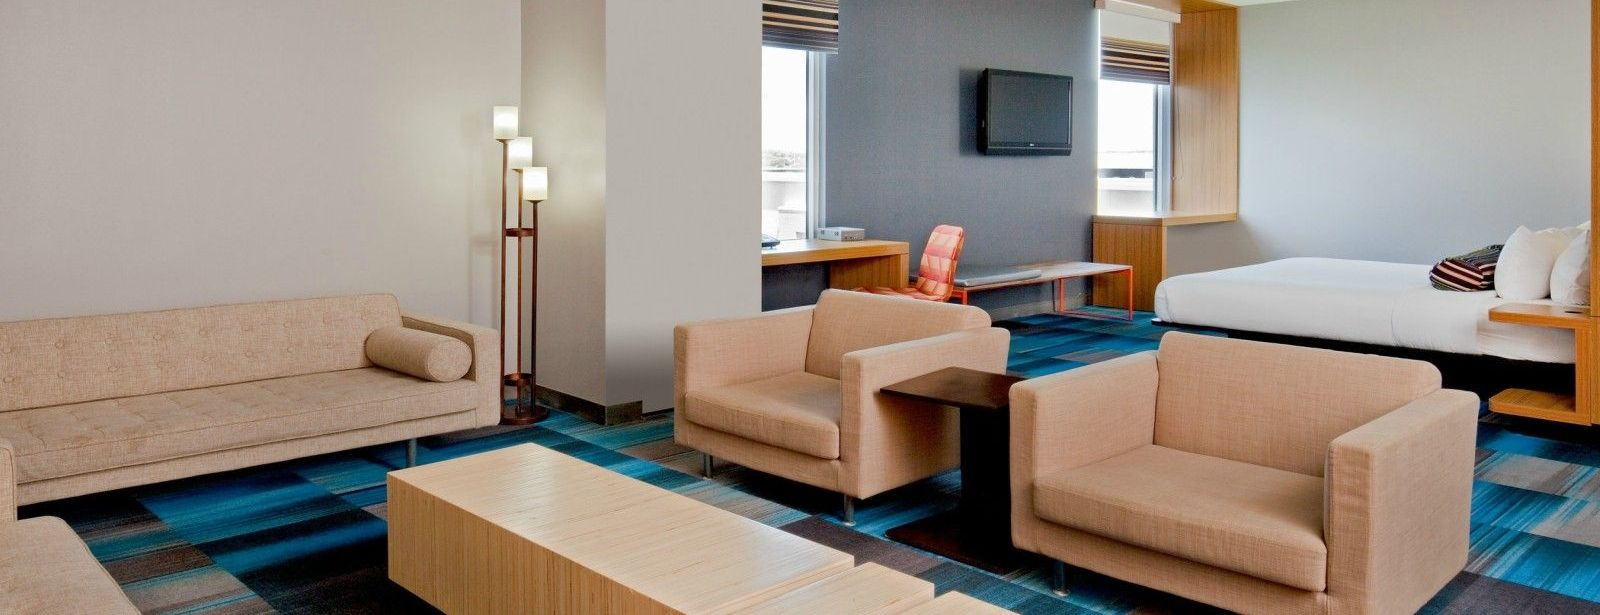 Bolingbrook Accommodations - Aloft King Suite